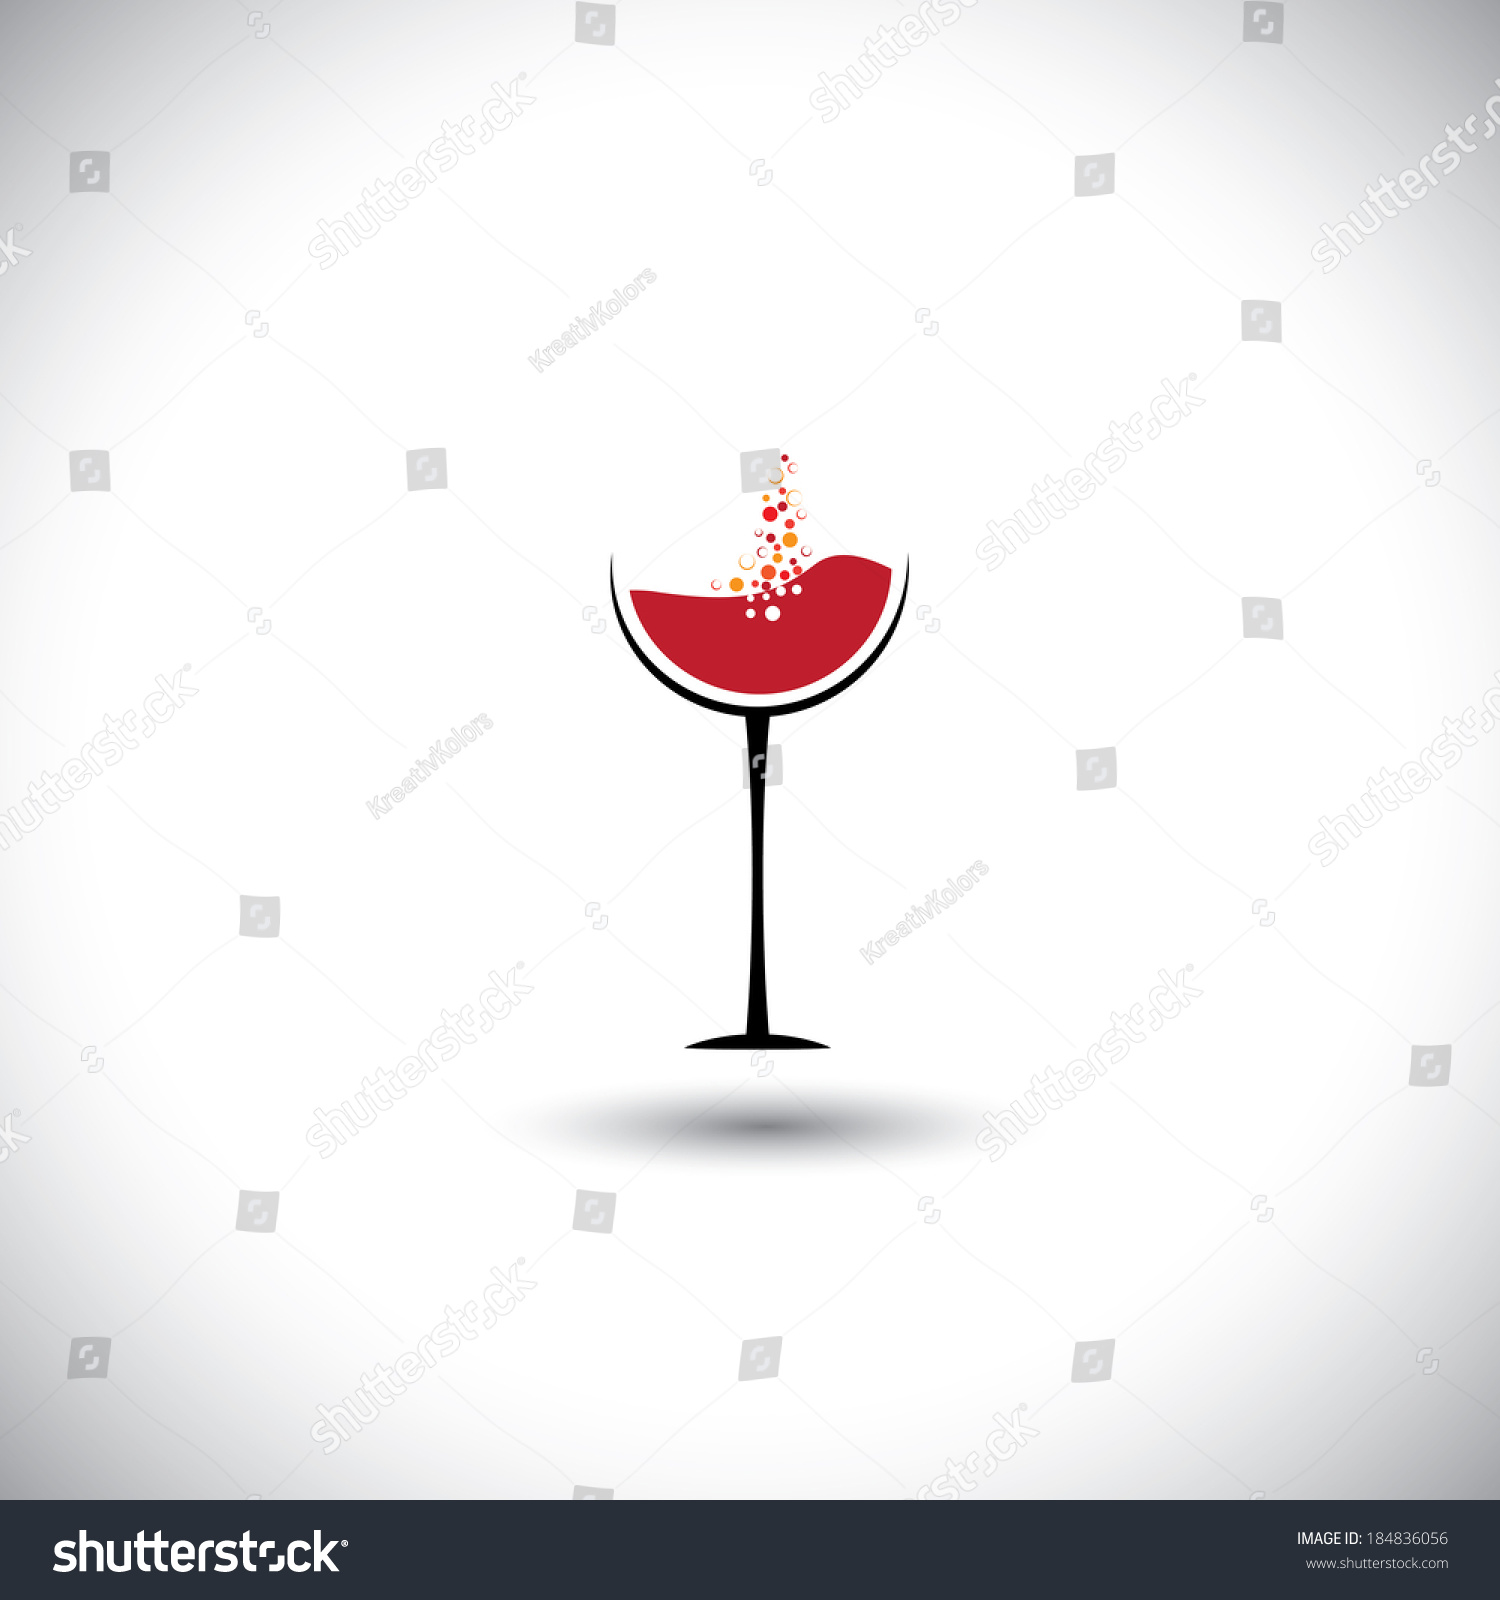 red wine bubbles wine glass abstract stock vector 184836056